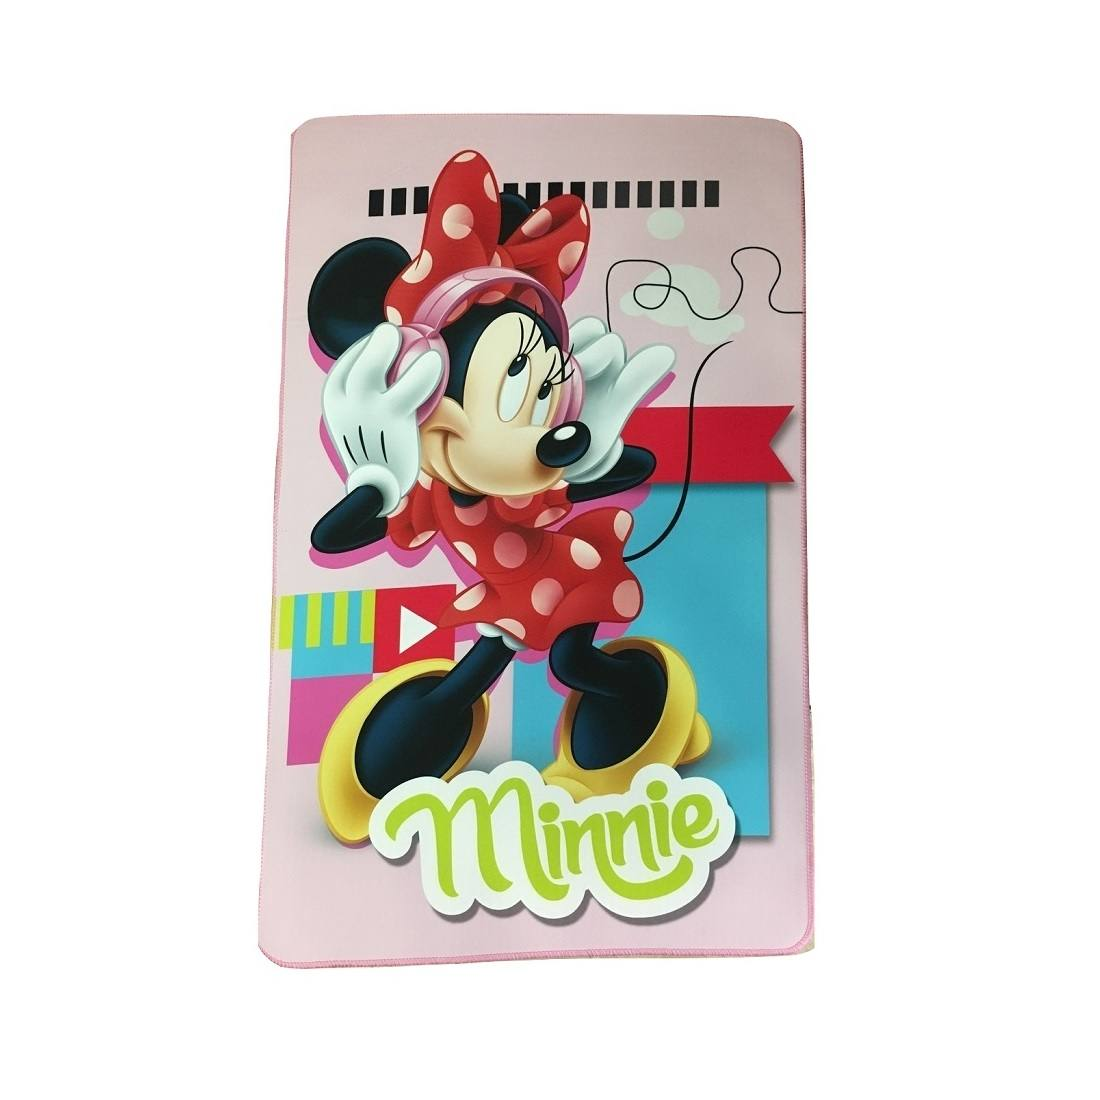 Tappeto Disney Minnie Cm 80 x 120 Antiscivolo Per Cameretta Minnie Music